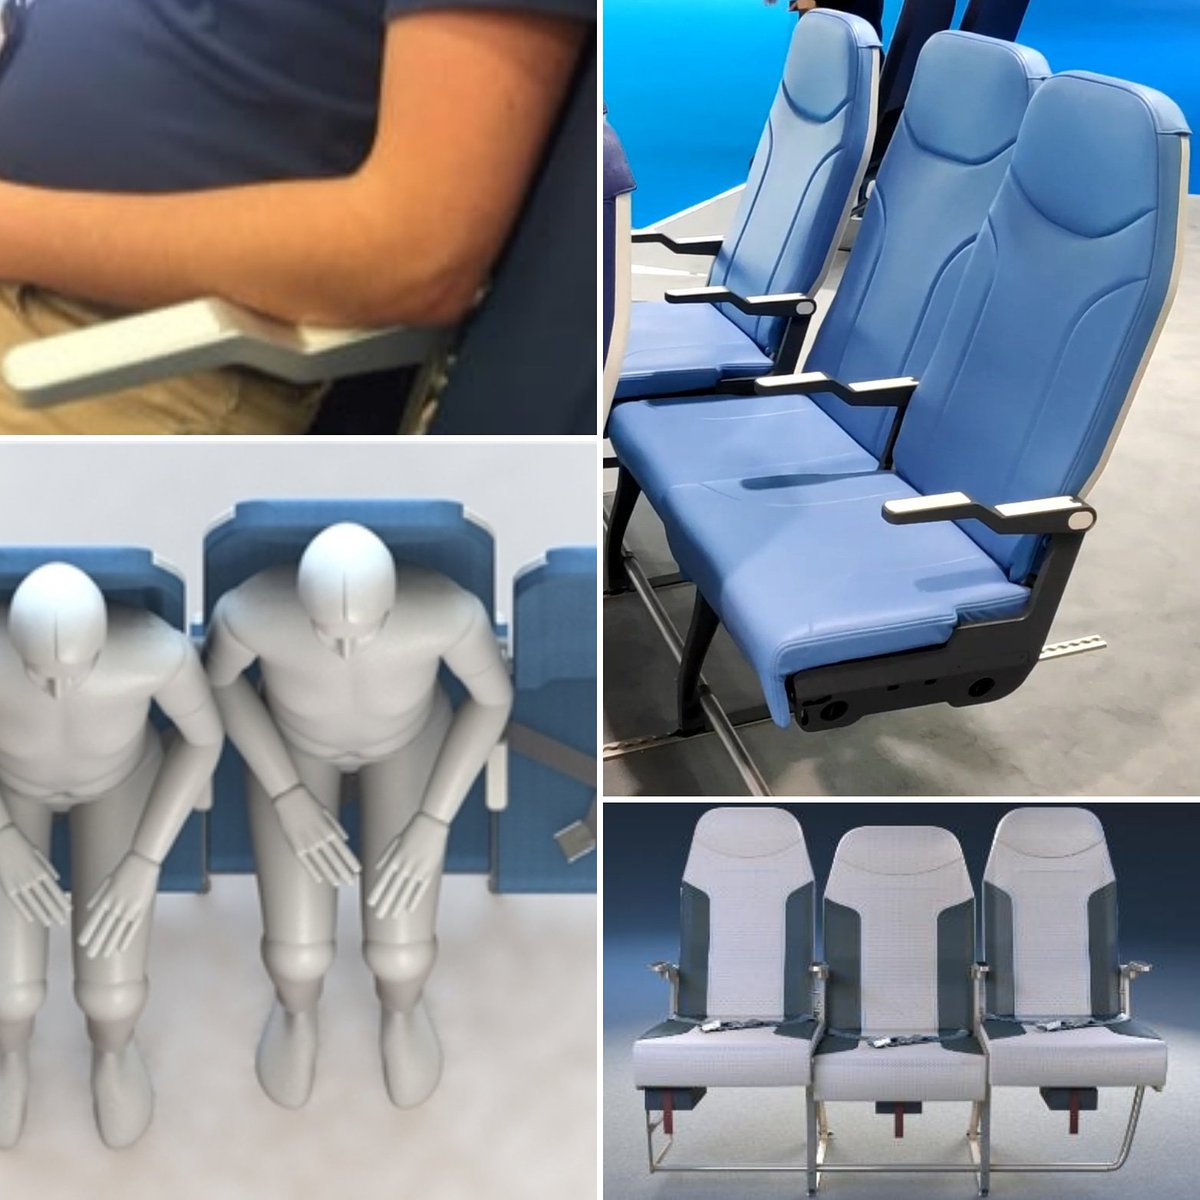 Amazing Steve Makris V Twitter The Dreaded Middle Airline Seat May Machost Co Dining Chair Design Ideas Machostcouk